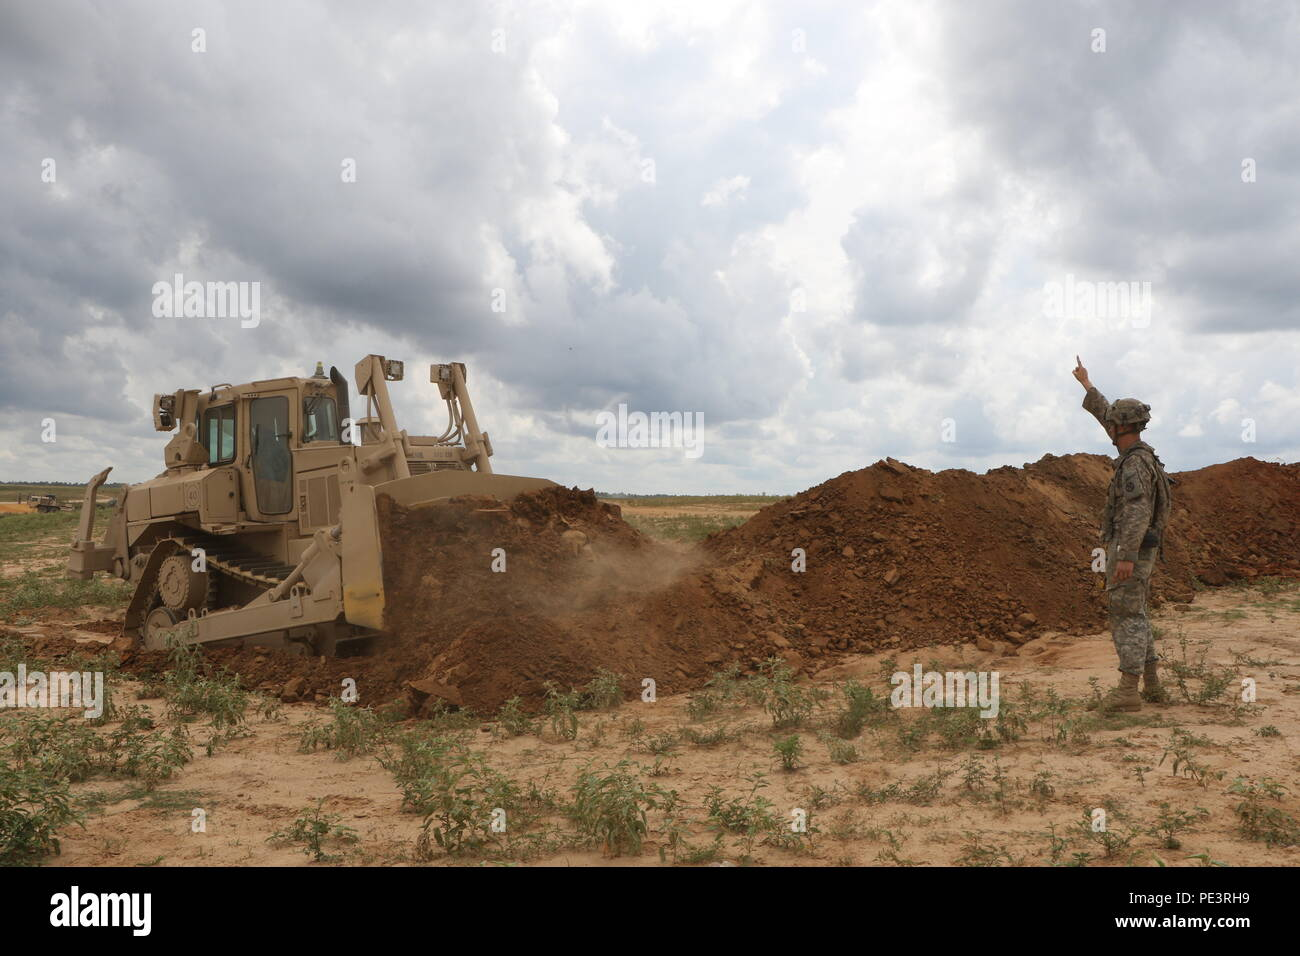 16th Engineer Brigade High Resolution Stock Photography And Images Alamy